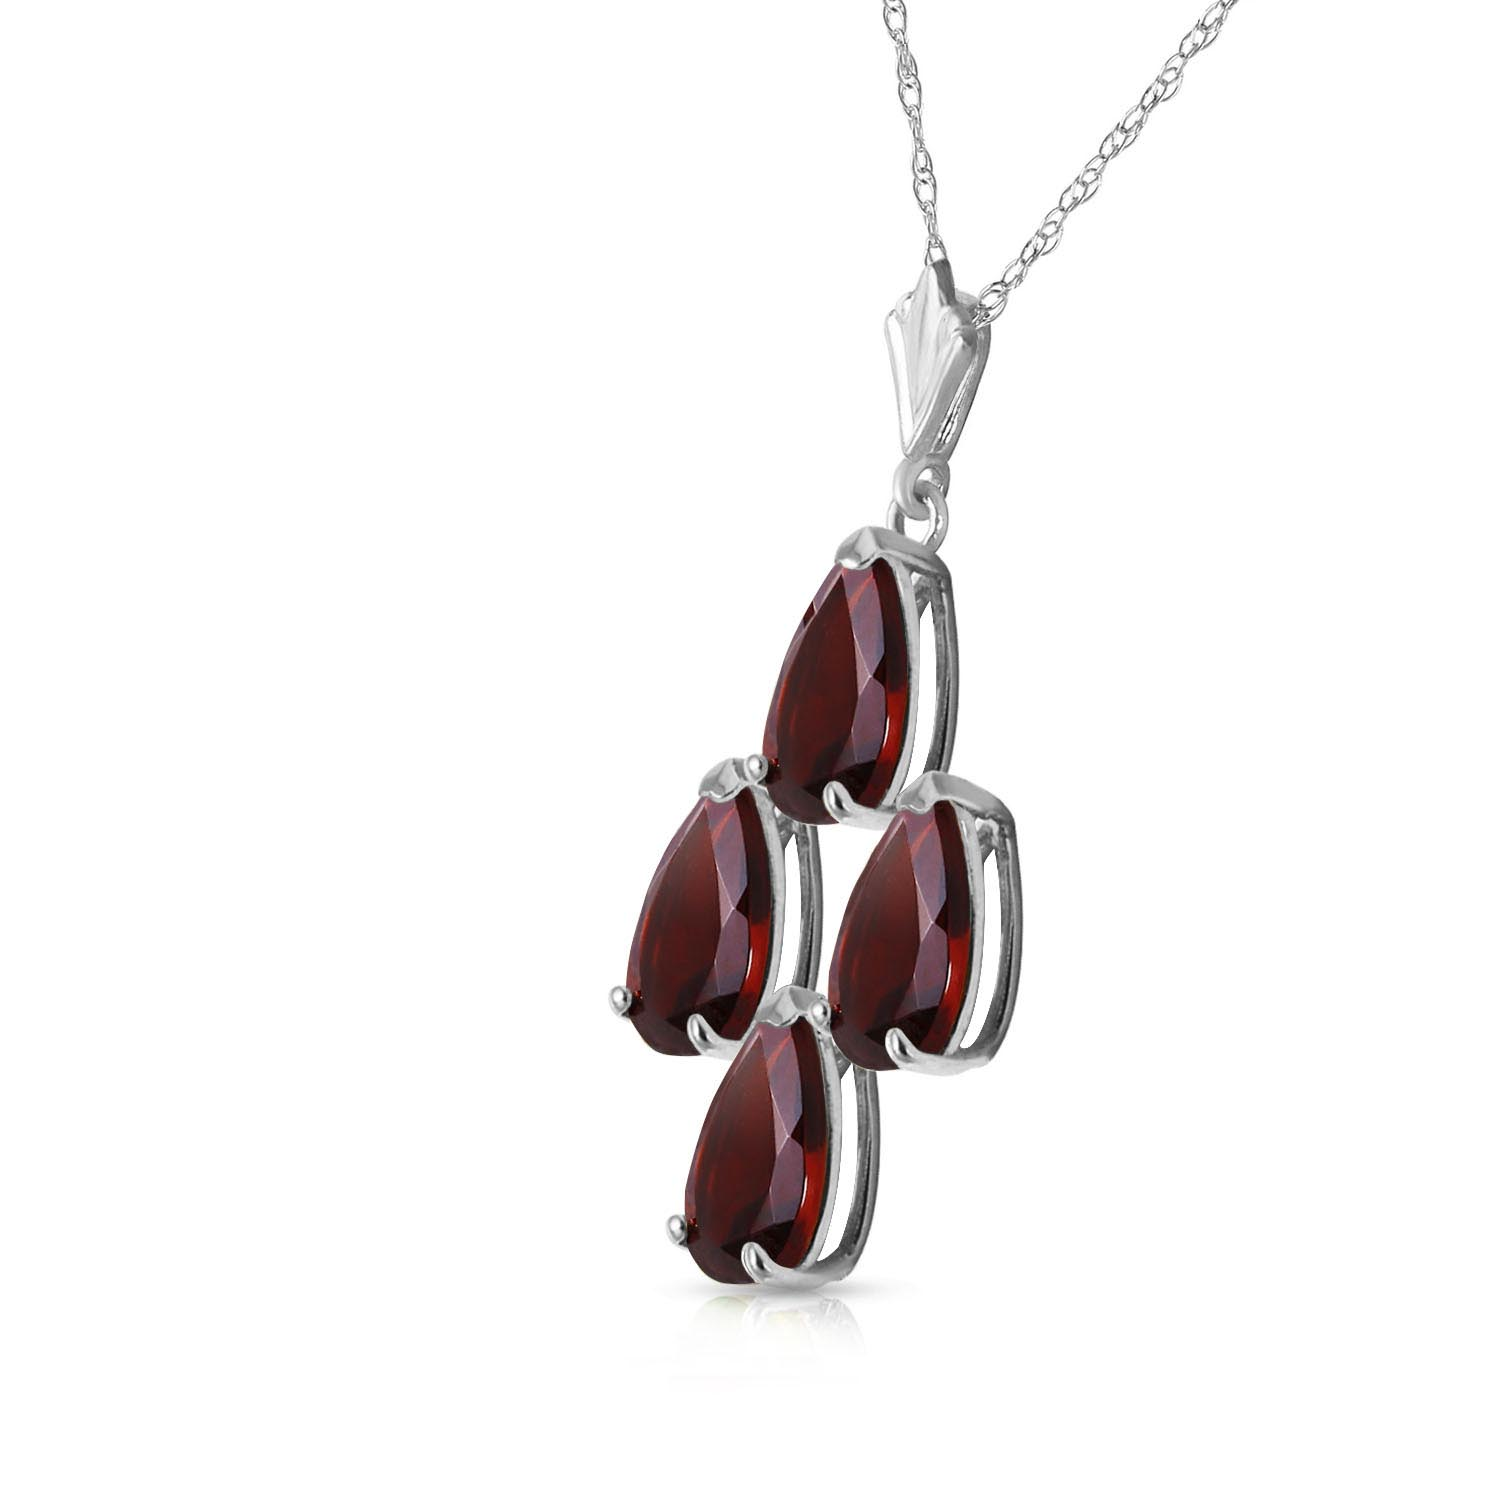 Pear Cut Garnet Pendant Necklace 1.5ctw in 9ct White Gold